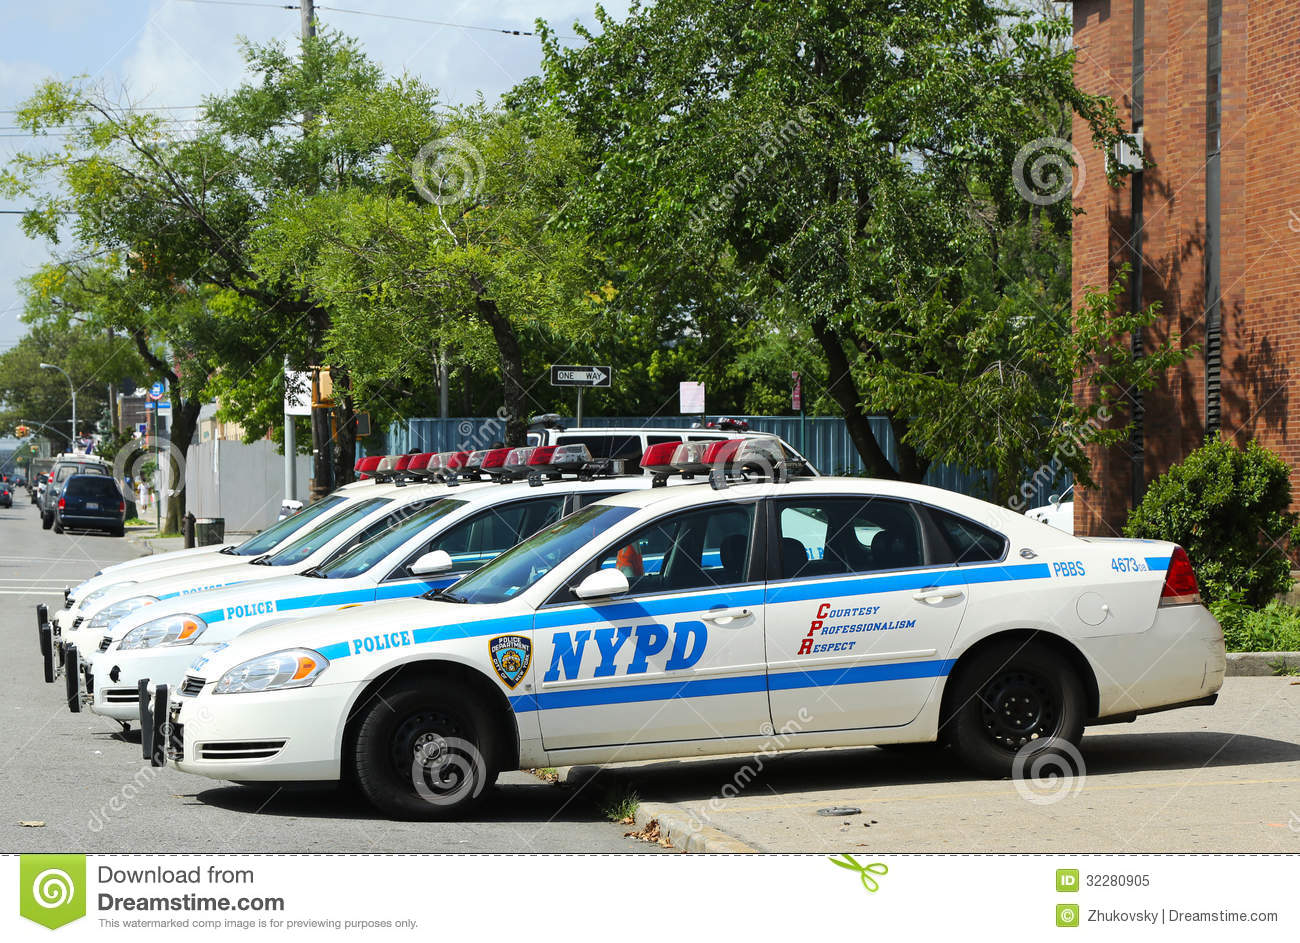 police idd nypd police interpol idd new york city police officer idd